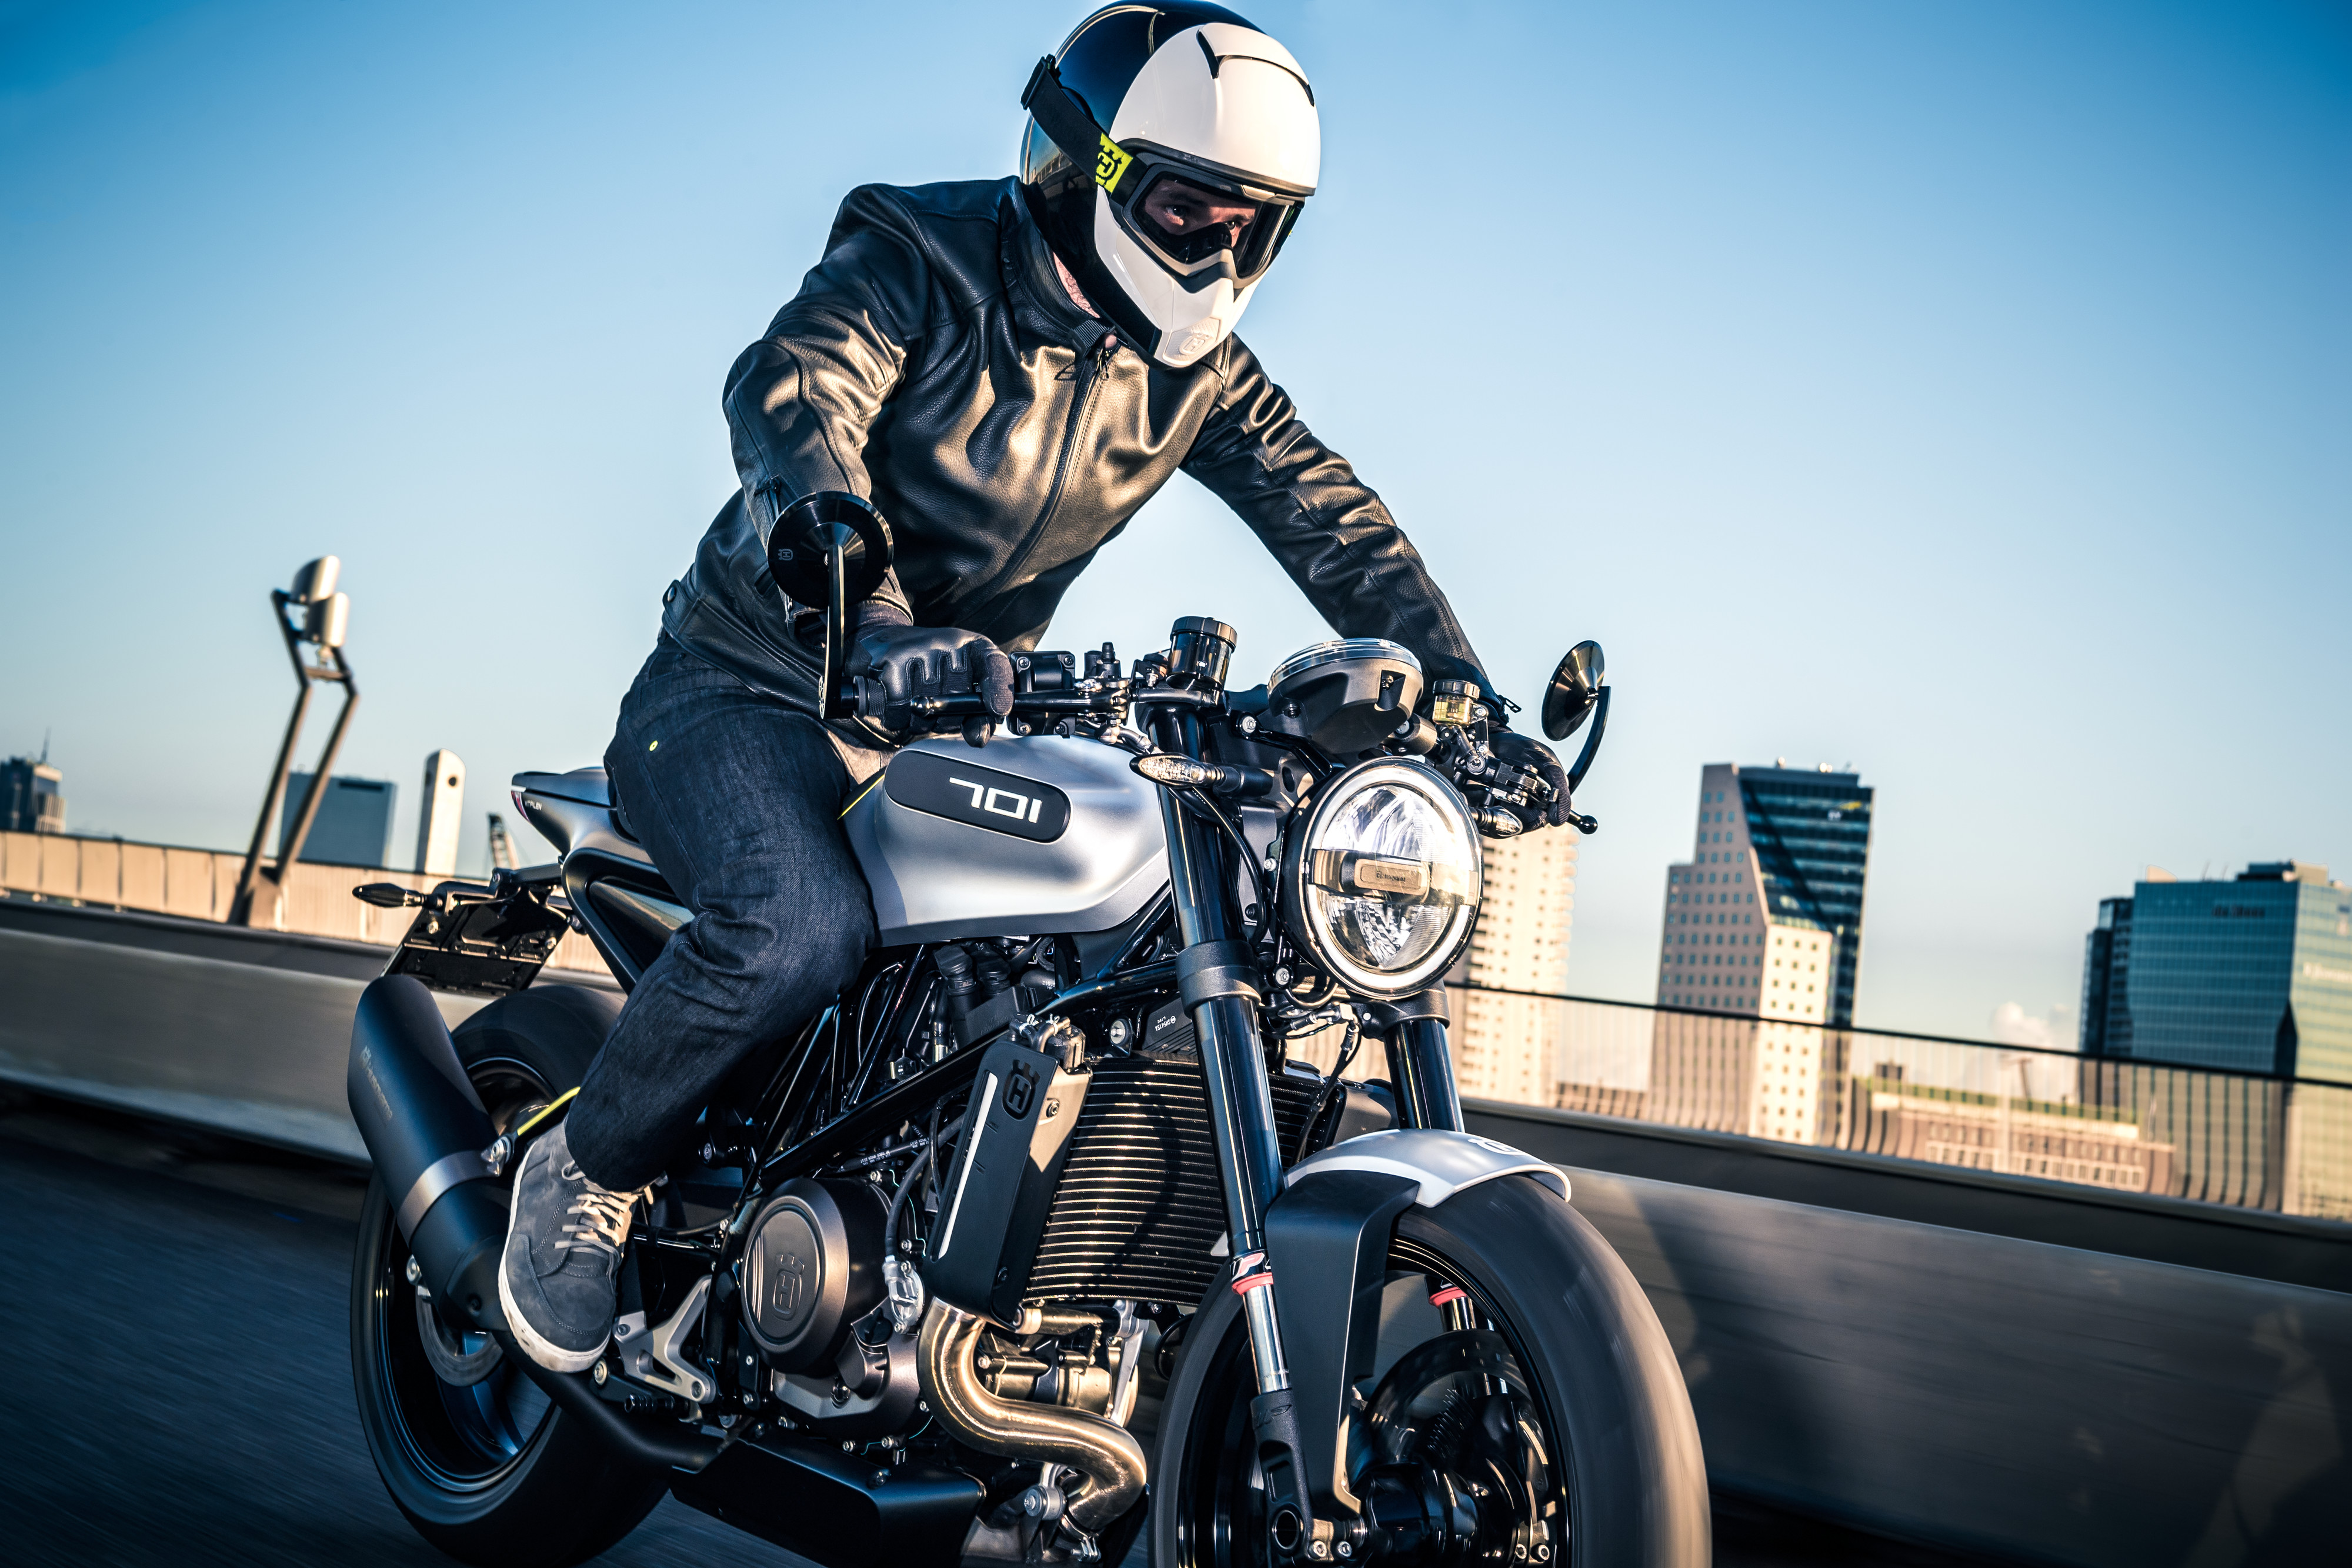 Husqvarna Motorcycles - Record-Breaking Sales - top 36,000 units sold globally during Business Year 2017